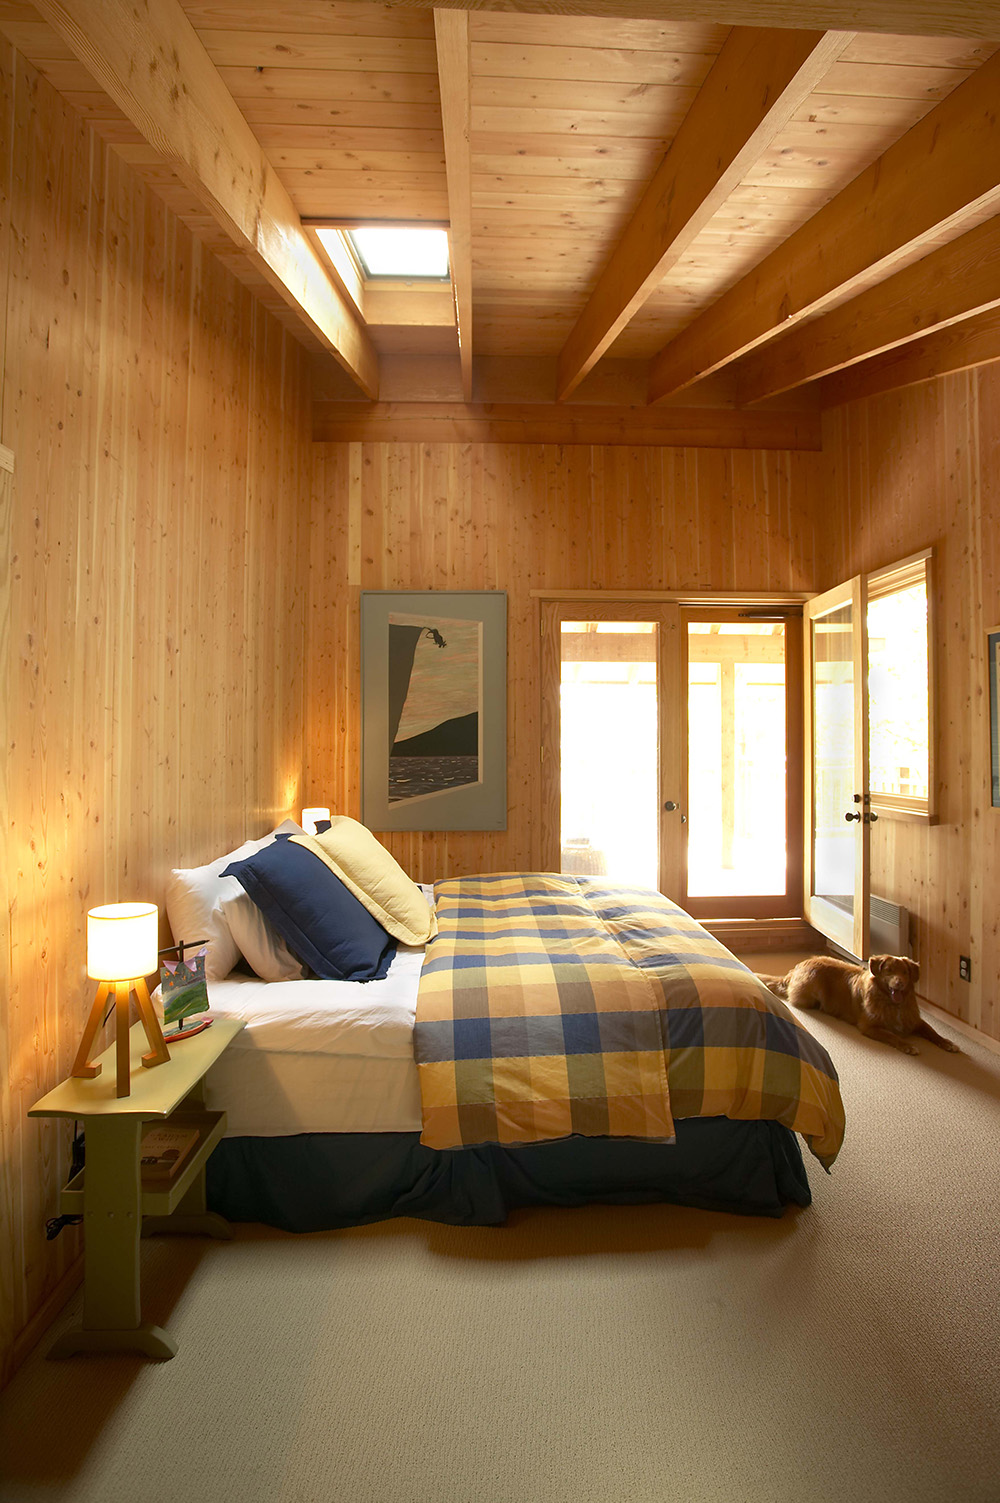 Timber-framed wood-clad bedroom with skylight.